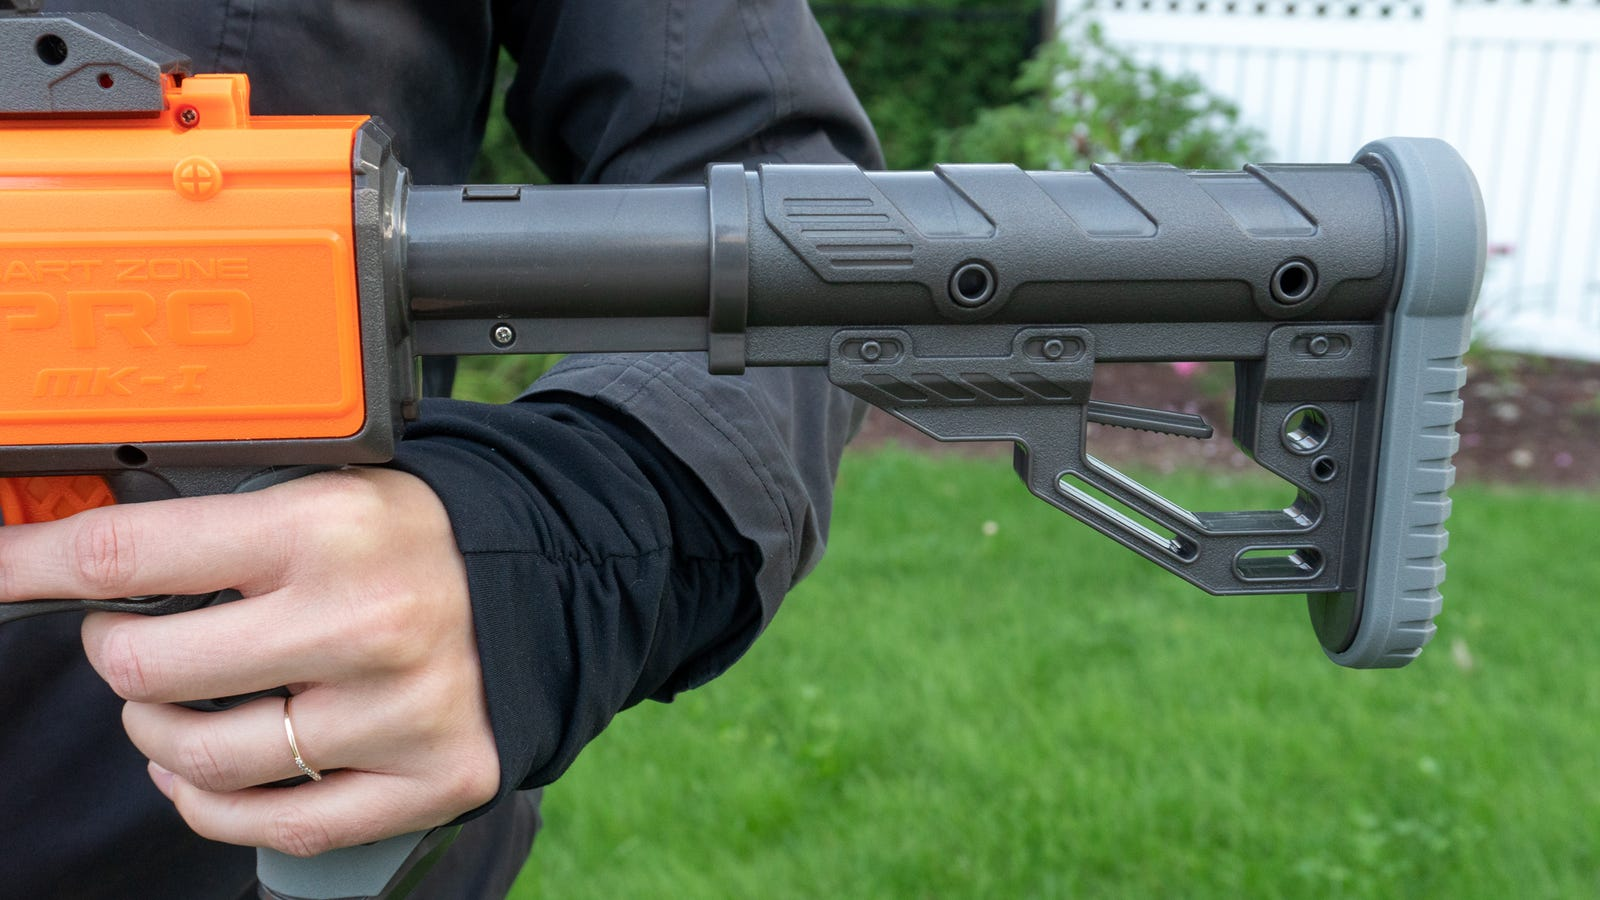 Even the adjustable stock on the back of the blaster can be completely removed to make it smaller for transport.